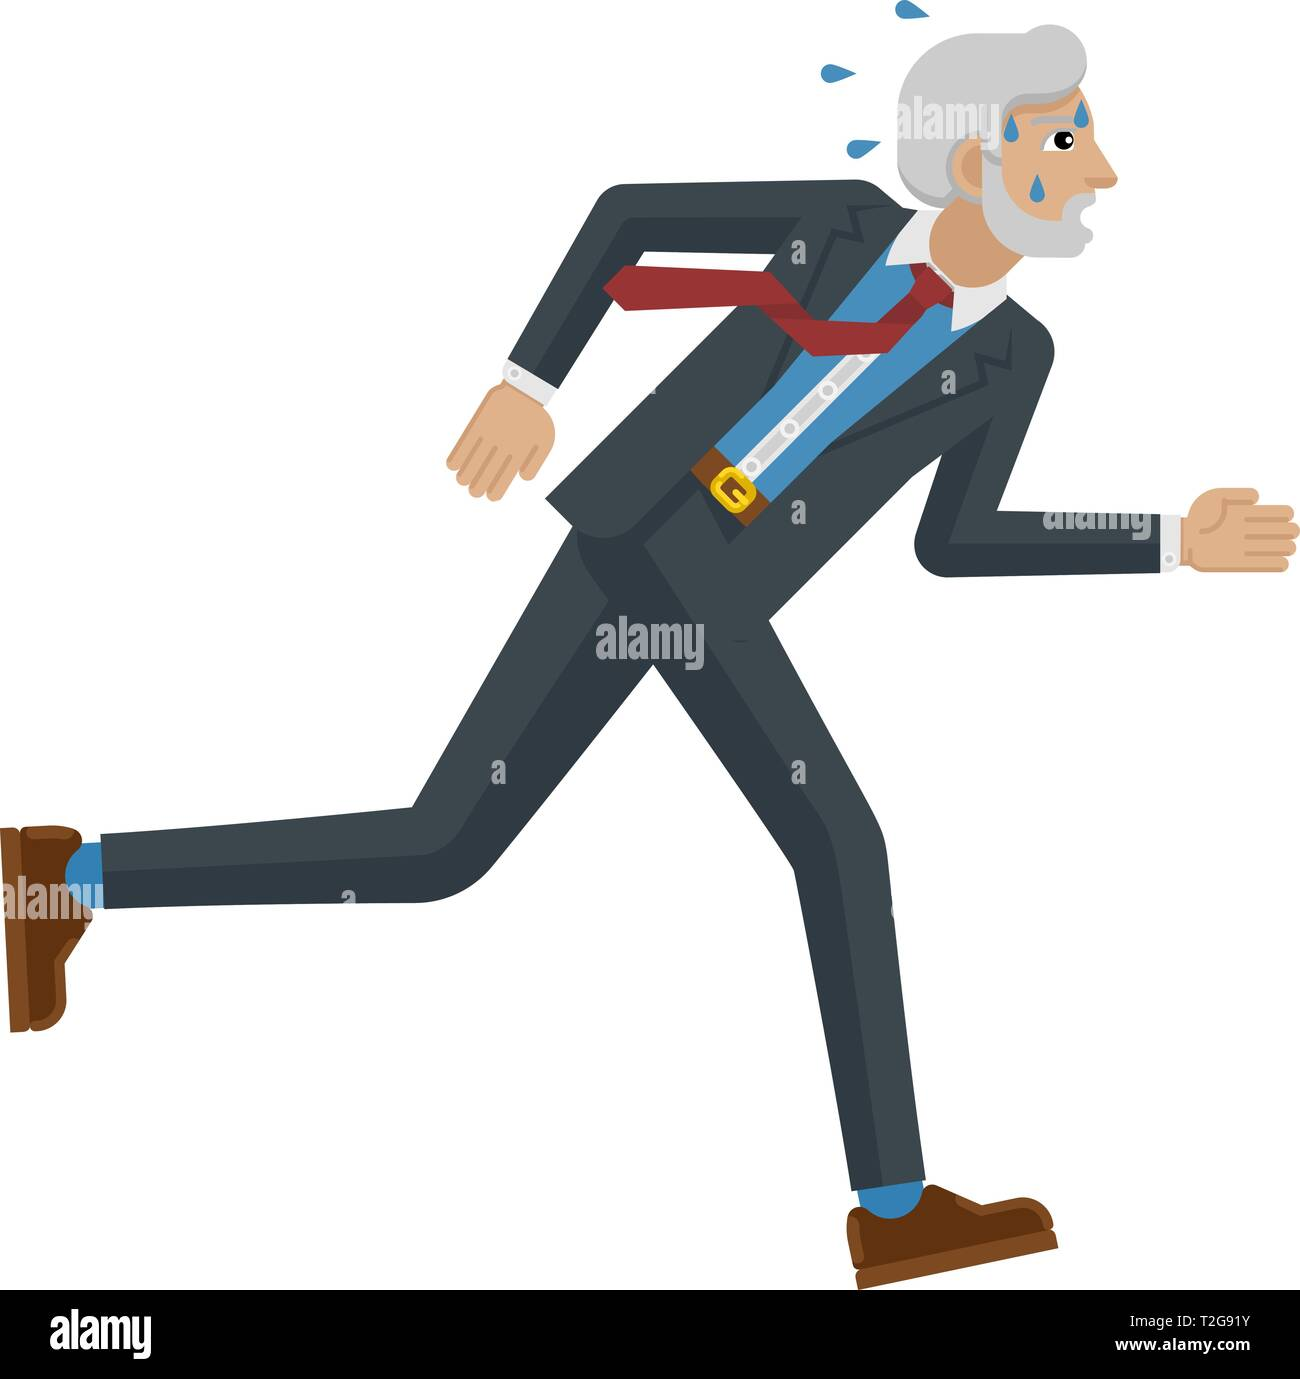 A stressed and tired looking mature businessman running as fast as he can to keep up with his workload or compete. Business concept illustration in fl - Stock Image